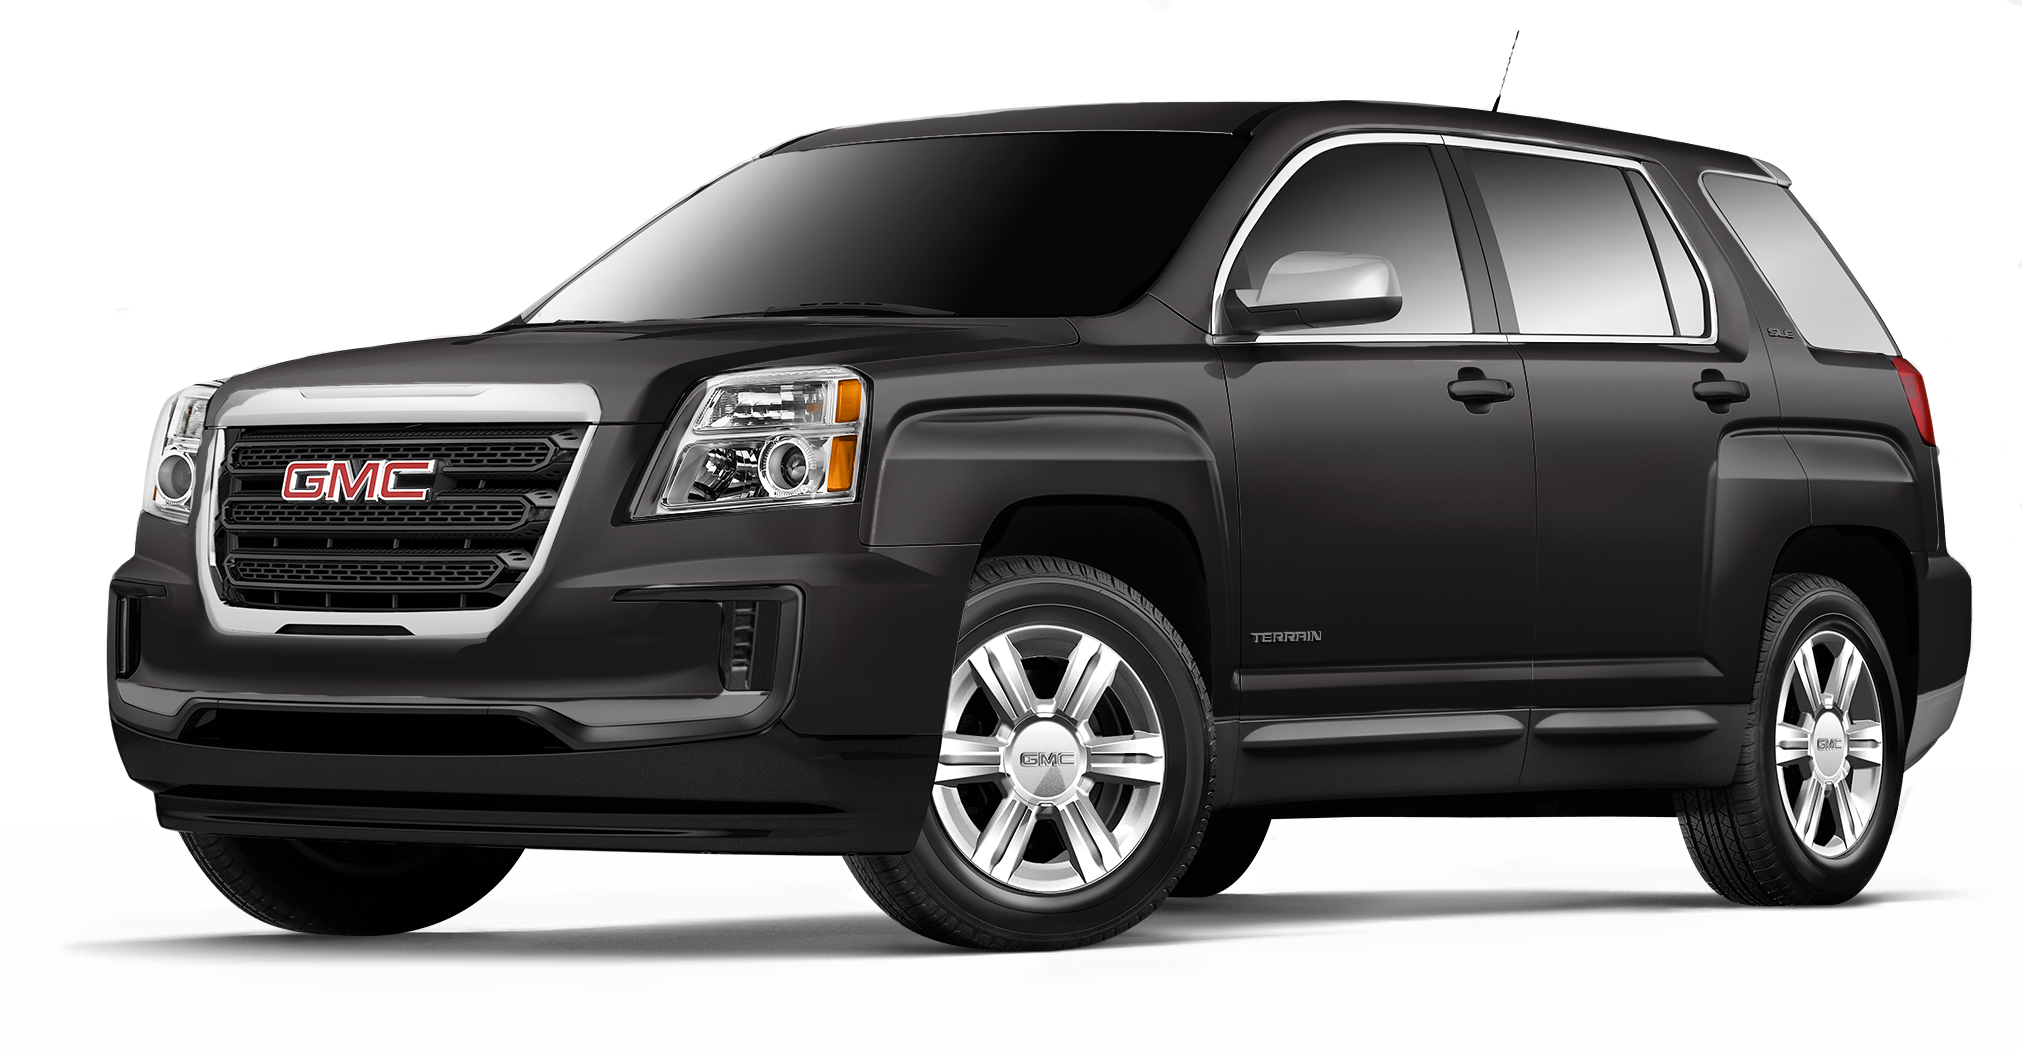 2017 GMC Terrain Winnipeg Iridium